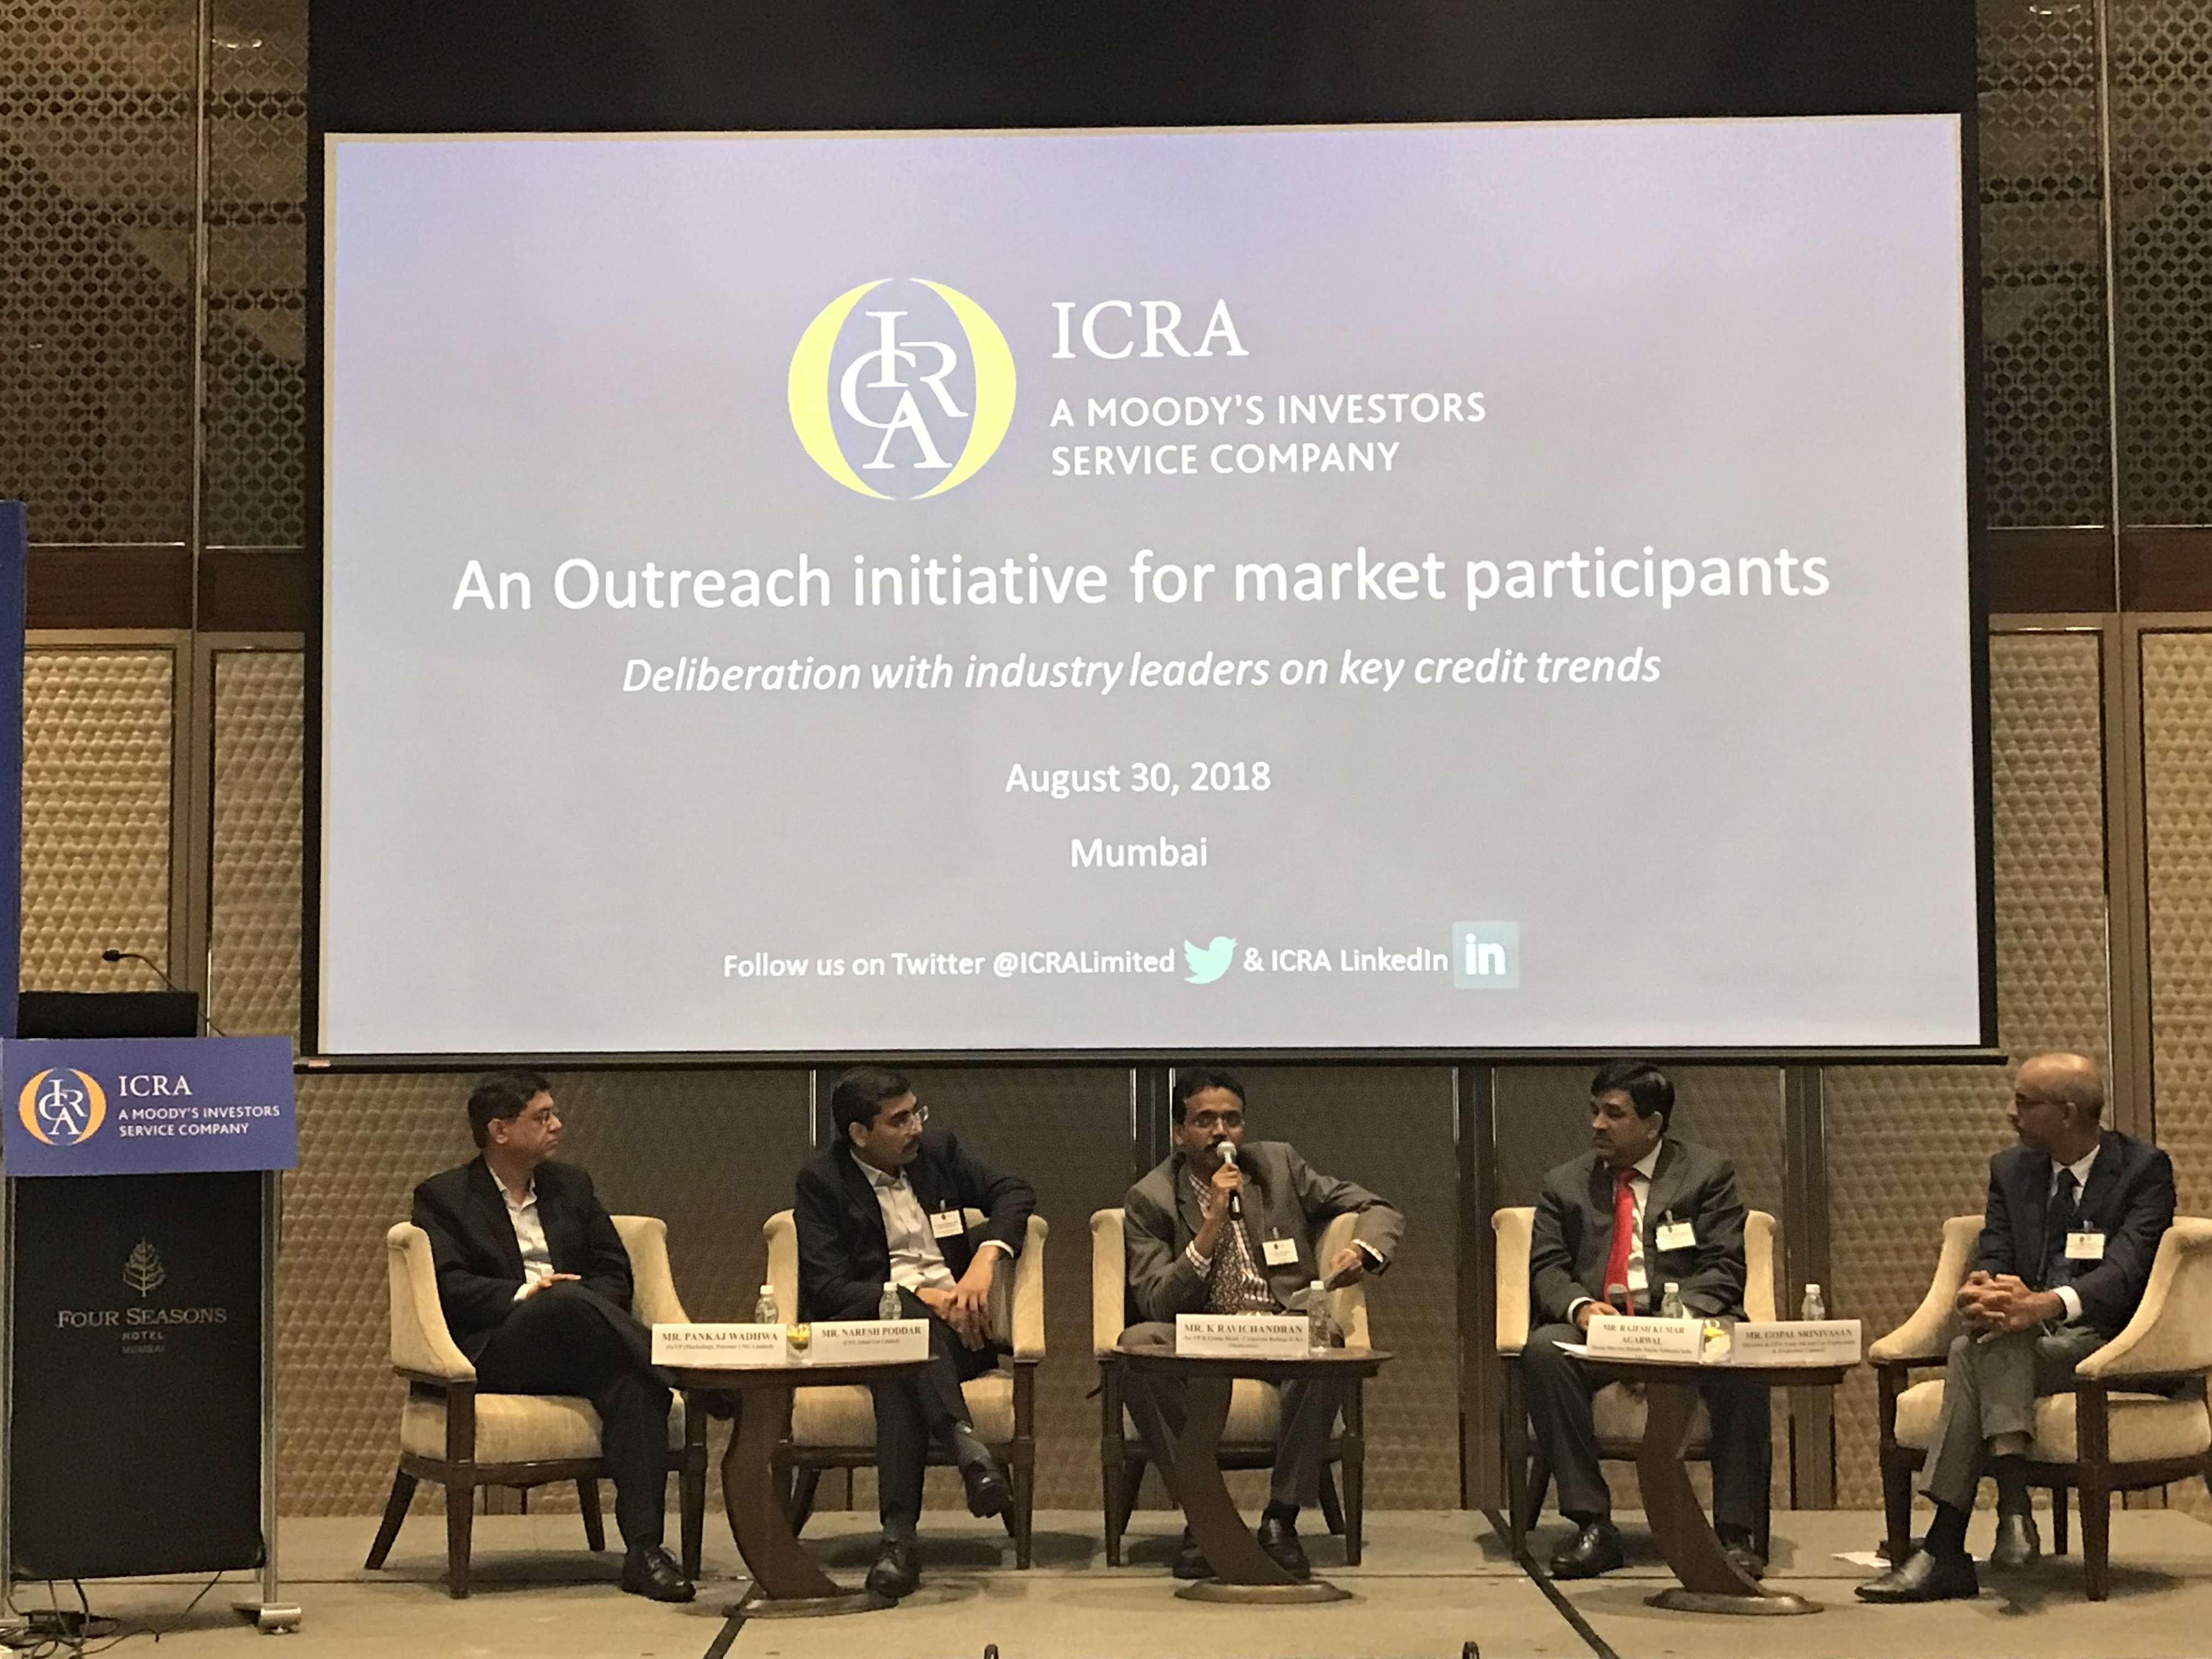 Panel Discussion 3 - Mr. Pankaj Wadhwa, Sr.VP (Marketing), Petronet LNG Limited; Mr. Naresh Poddar, CFO, Adani Gas Limited; Mr. K Ravichandran, Sr. VP & Group Head Corporate Ratings ICRA (Moderator); Mr. Rajesh Kumar Agarwal, Senior Director, Deloitte India LLP; Mr. Gopal Srinivasan, Director & CFO, Essar Oil and Gas Exploration & Production Limited having an intriguing discussion on 'Challenges in dealing with high oil prices' at the ICRA Conference on Oil & Gas Sector in Mumbai.